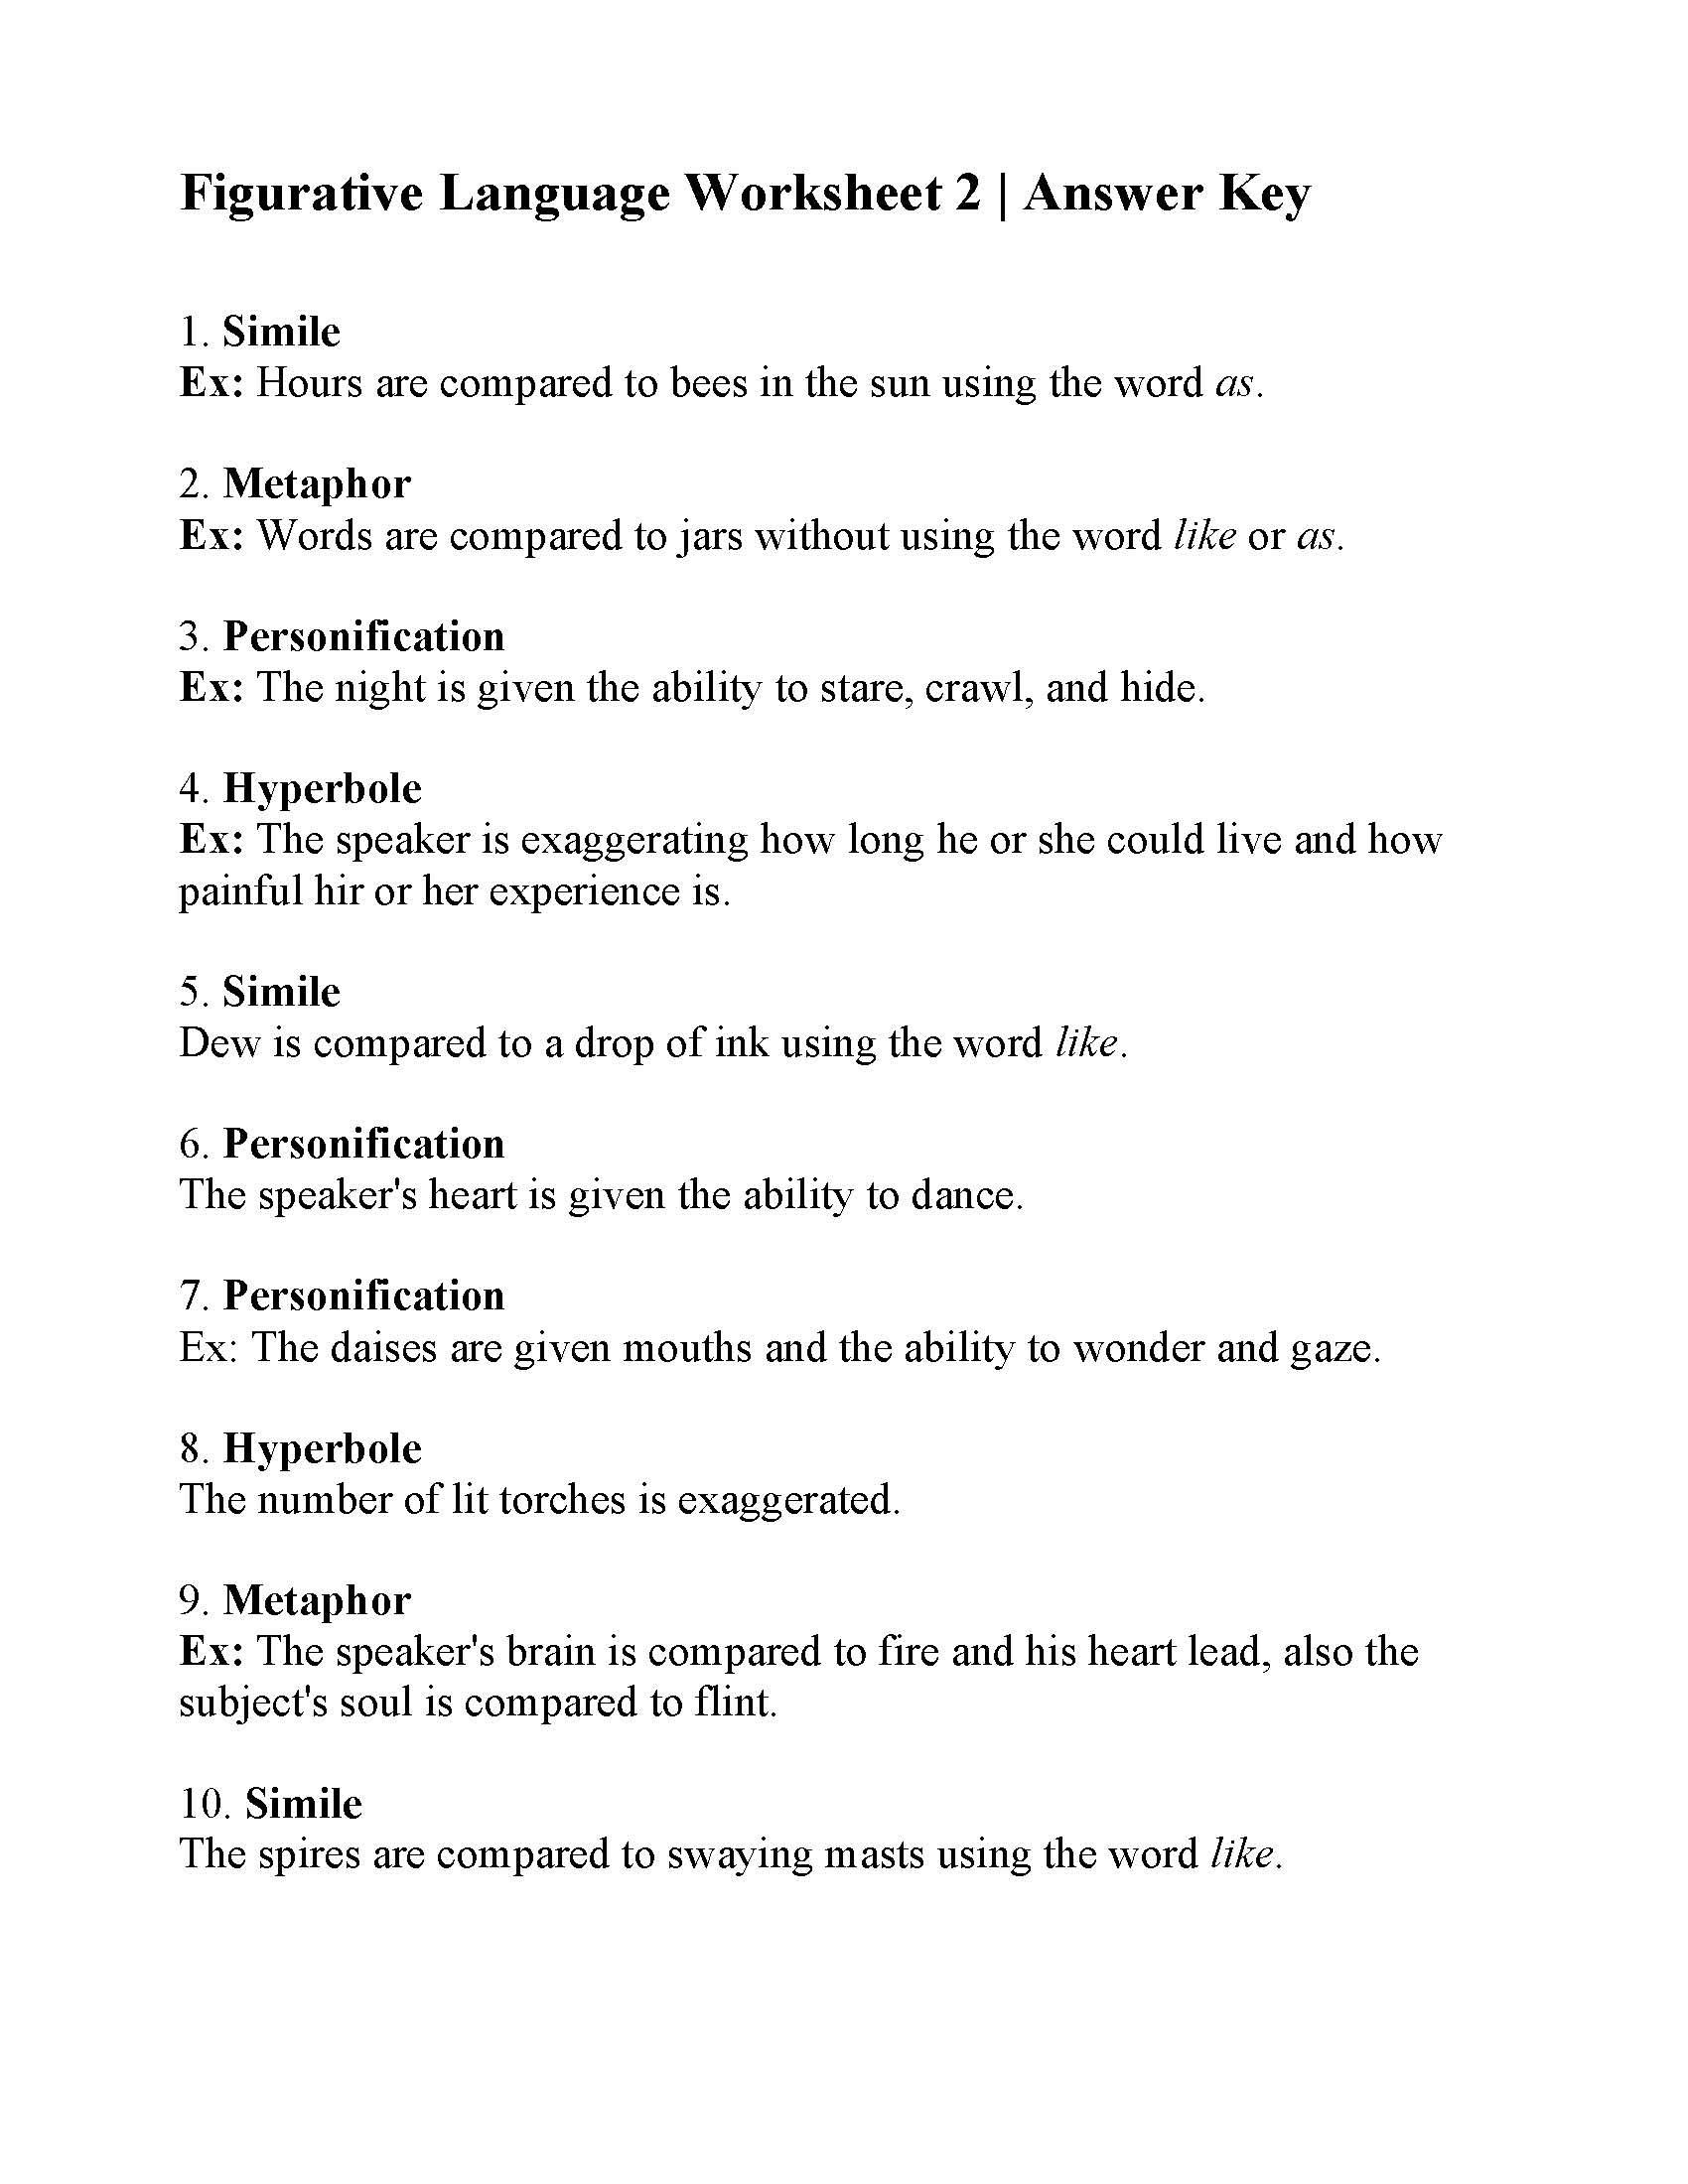 Personification Worksheets for Middle School This is the Answer Key for the Figurative Language Worksheet